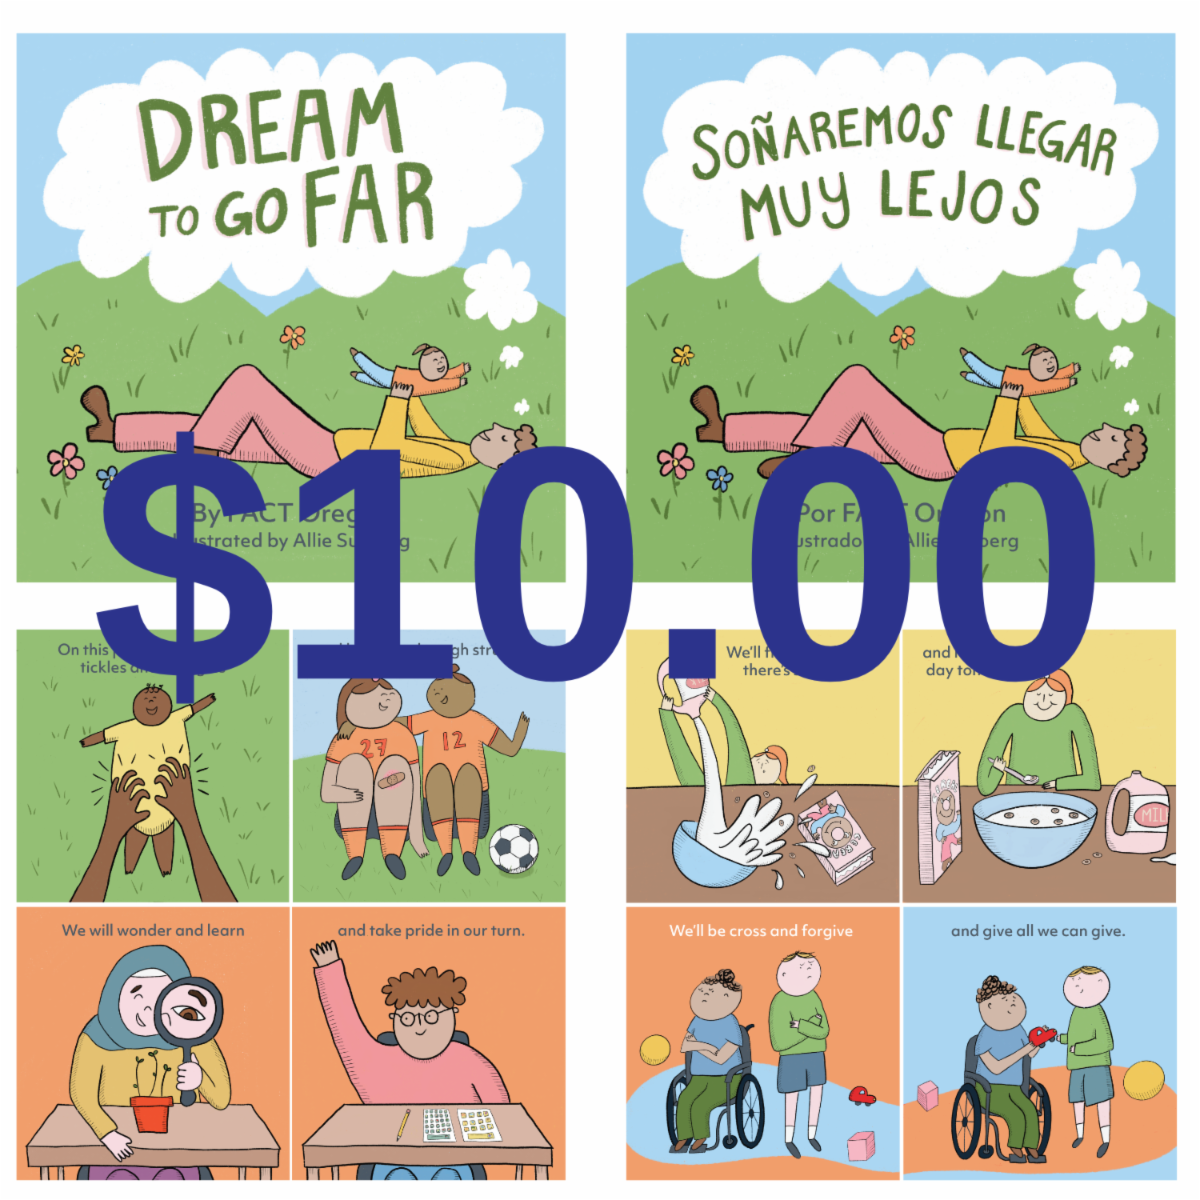 Story board of Dream To Go Far book shows a price of $10 and images of children of different ages, races, and disabilities doing ordinary things like pouring cereal and milk, getting ticked, sharing a toy, comforting a friend, and raising a hand in class.